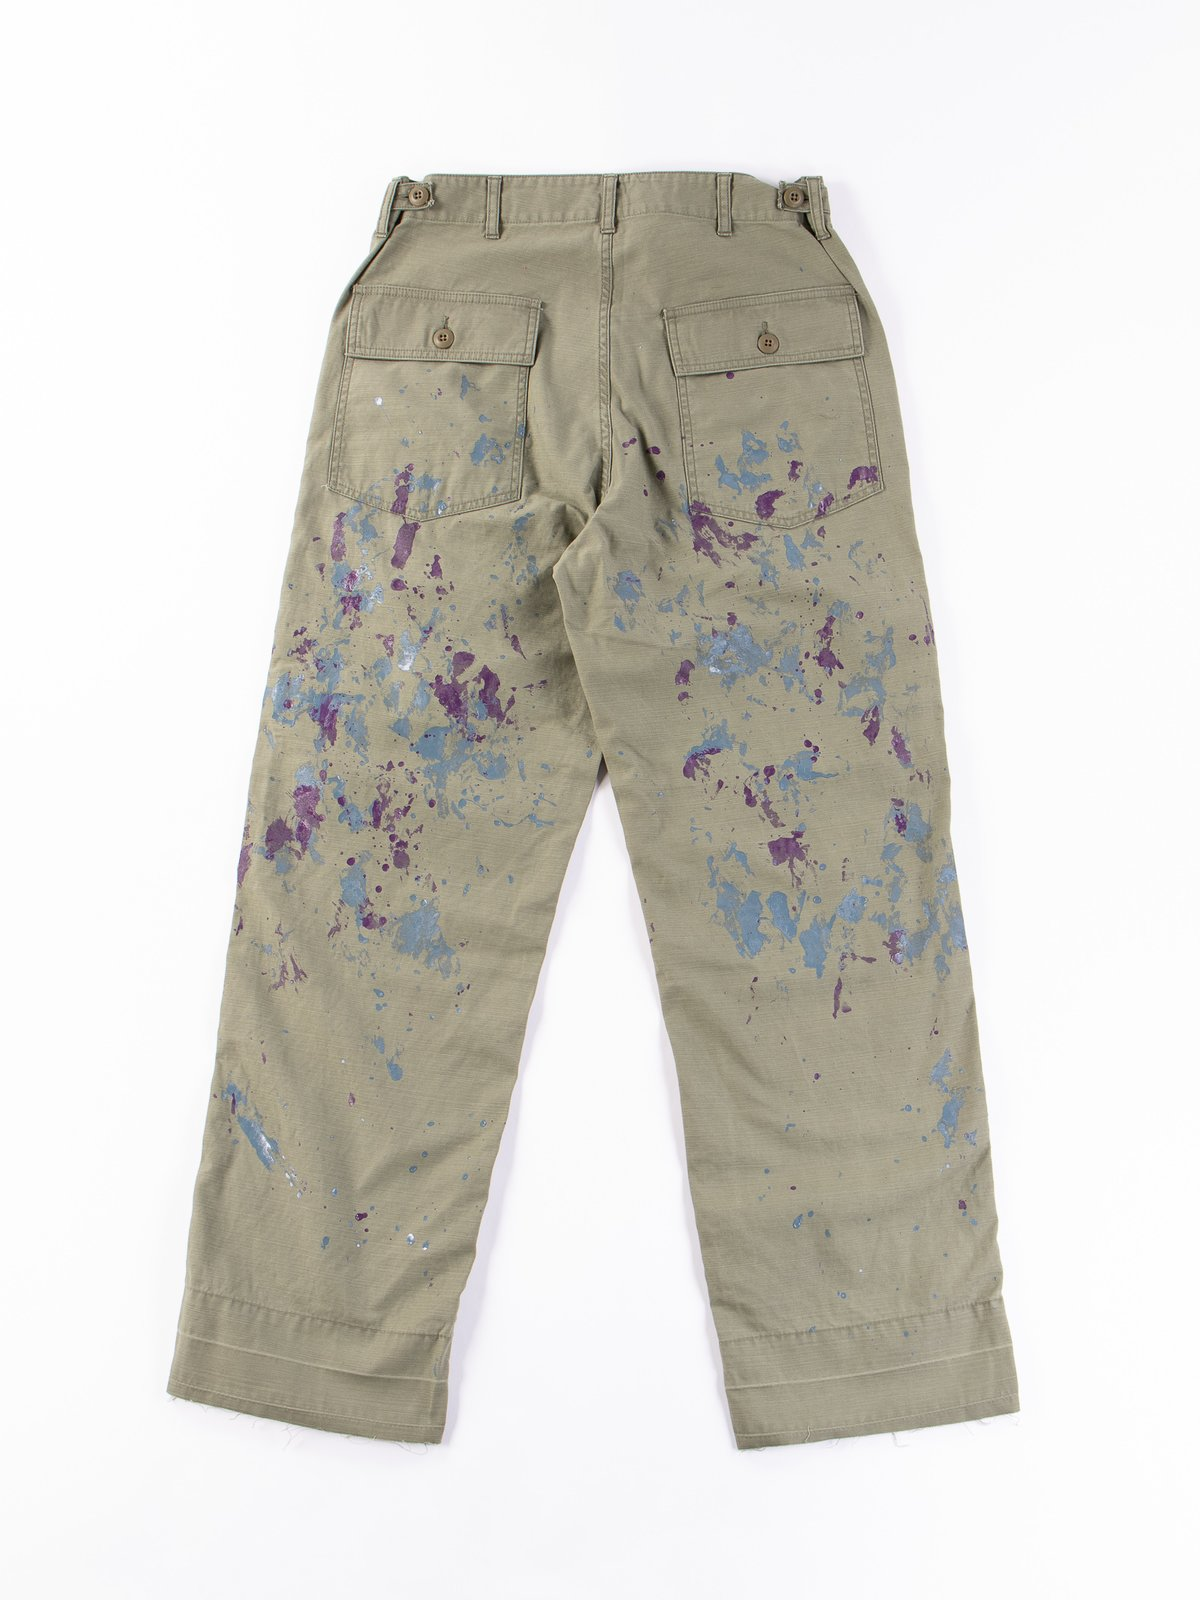 Olive Paint Sateen Fatigue Pant - Image 4